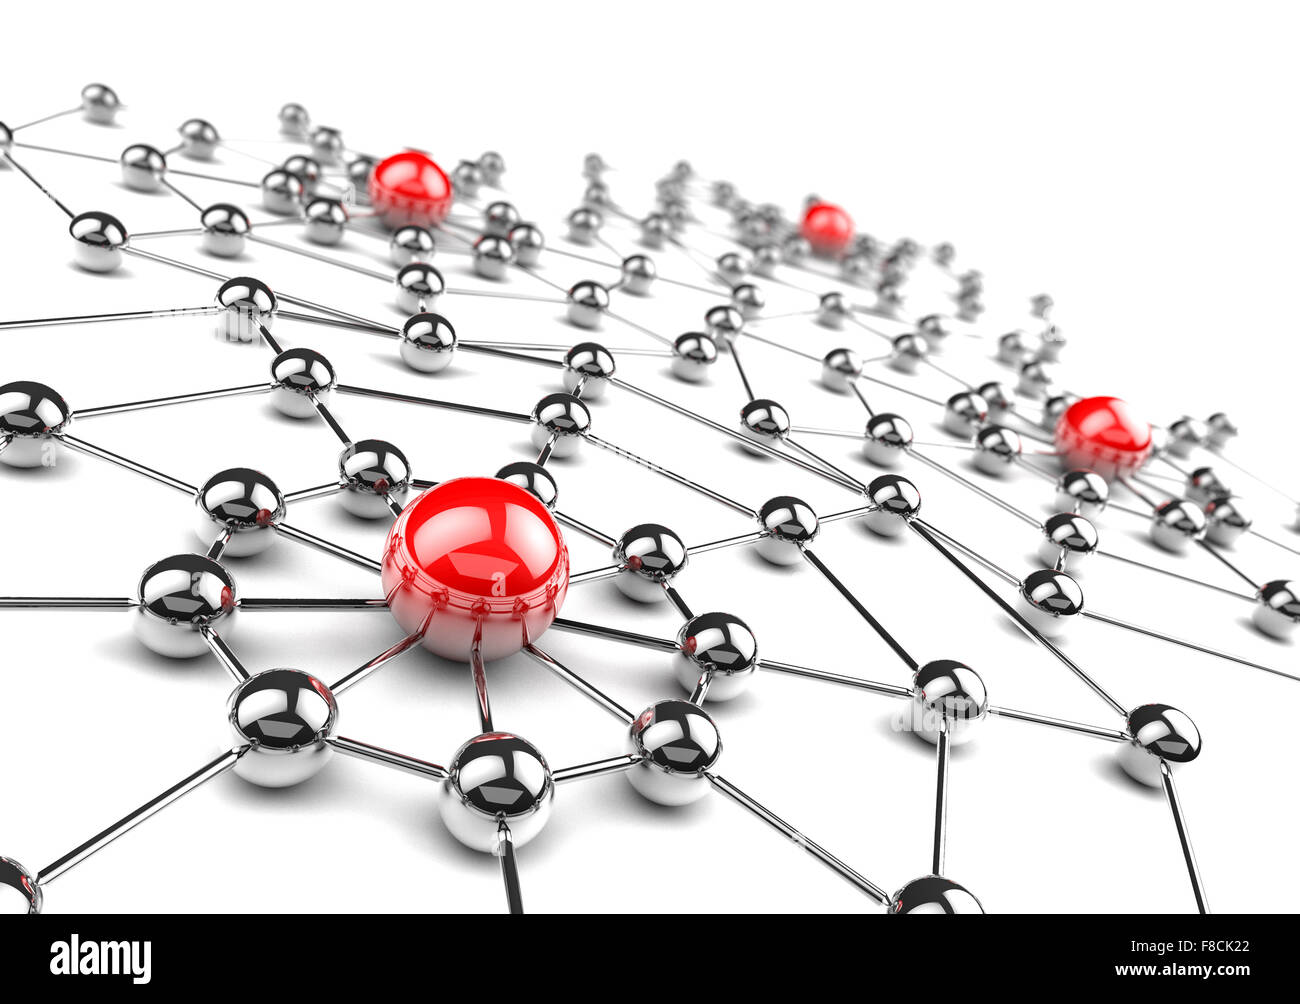 Internet and networking concept.3D net - Stock Image